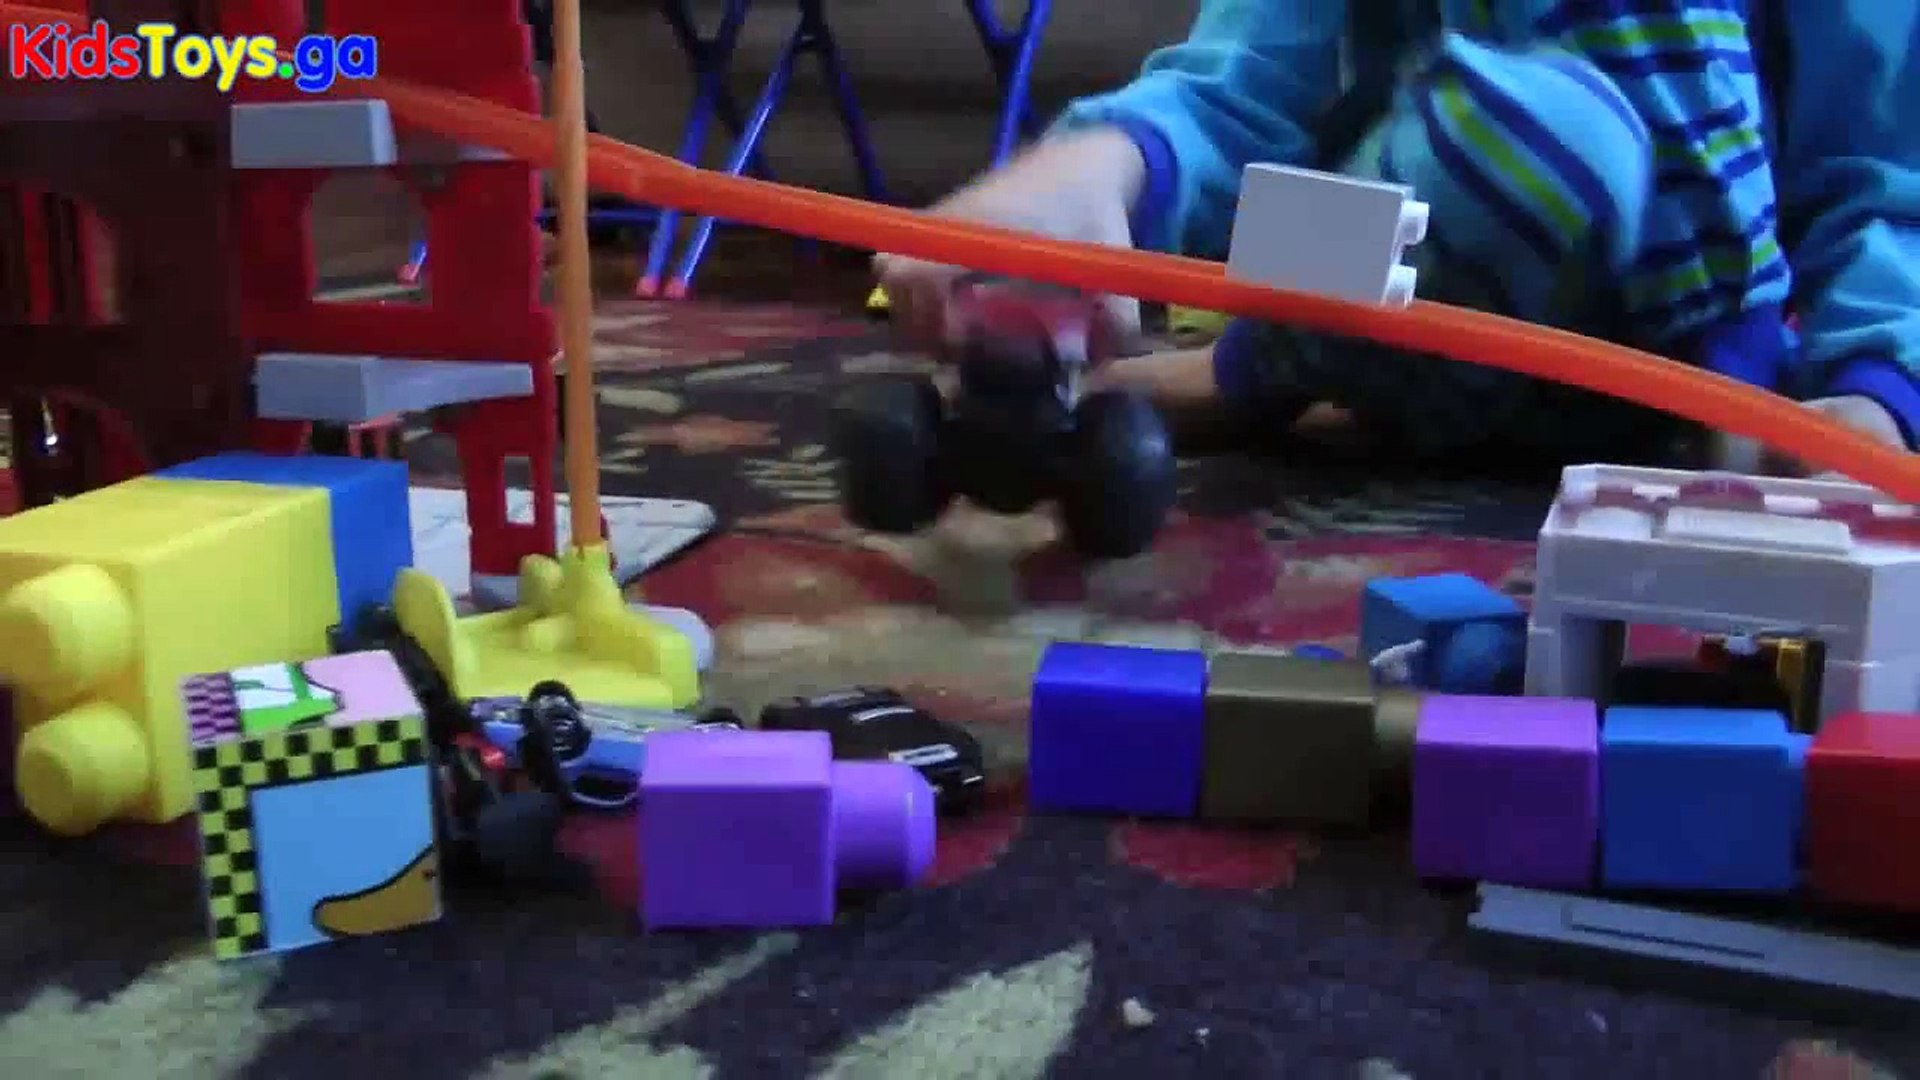 CARS MONSTER TRUCKS KIDS PLAYING PLAY SETS and Crashes! - learn numbers kids toys